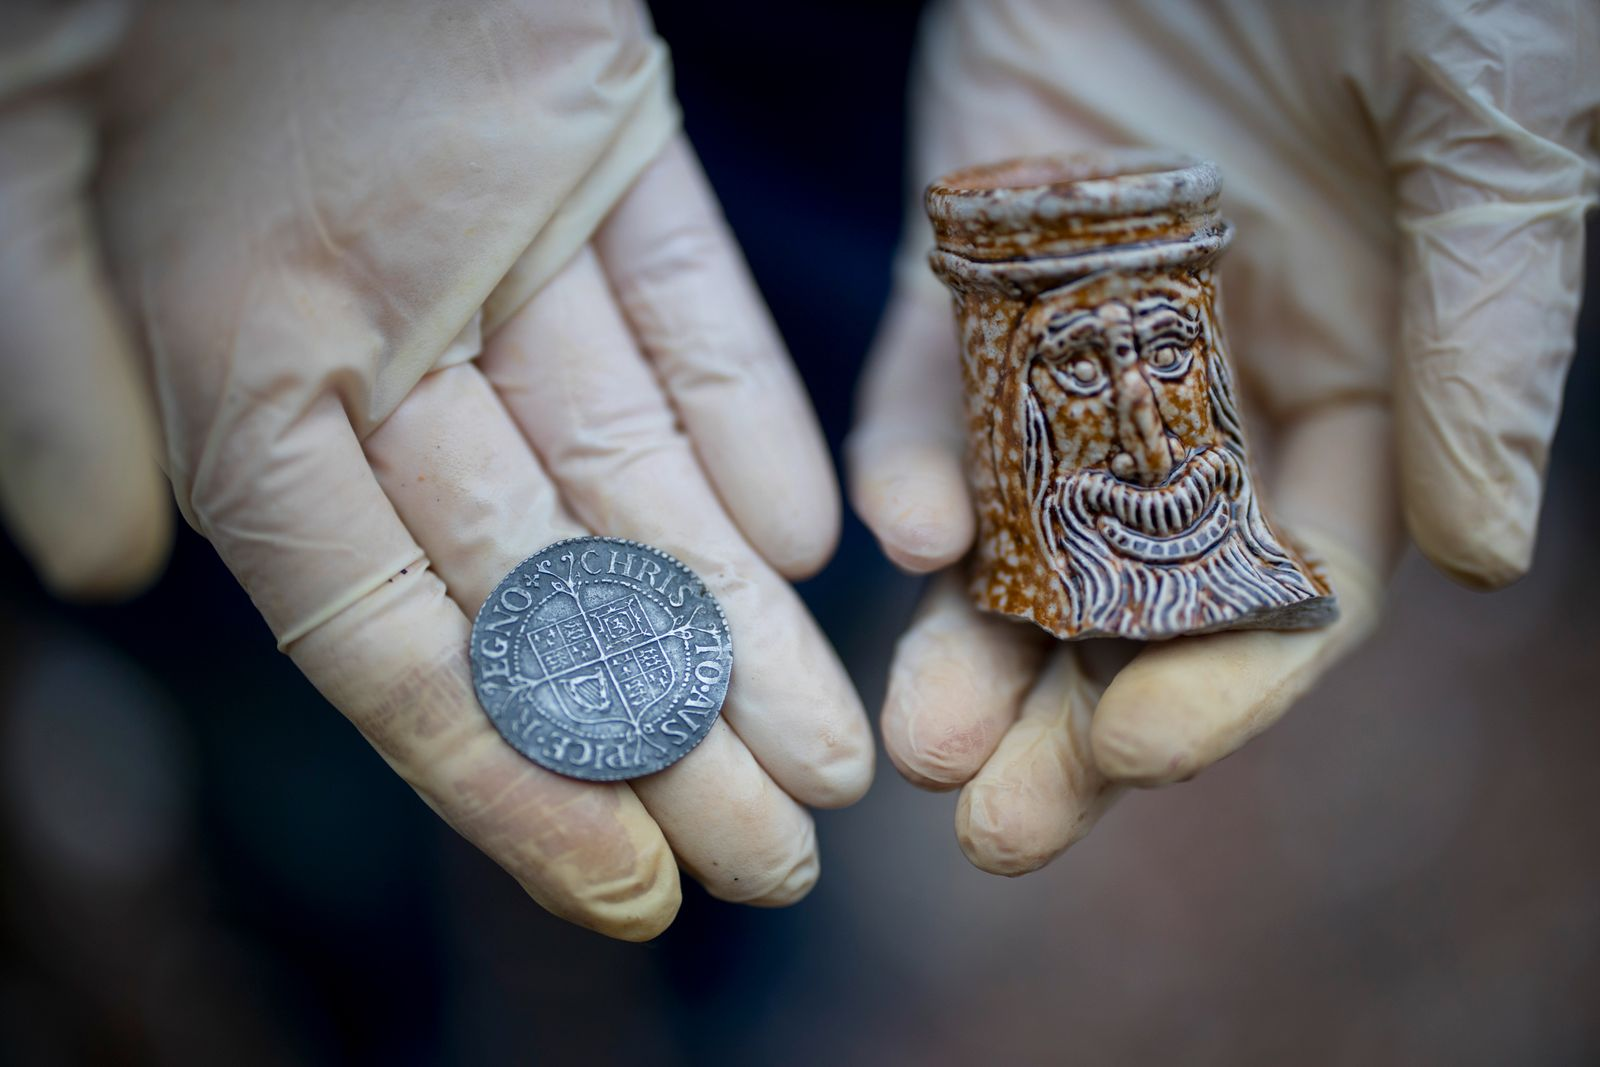 LIFESTYLE-BRITAIN-HISTORY-ARCHAEOLOGY